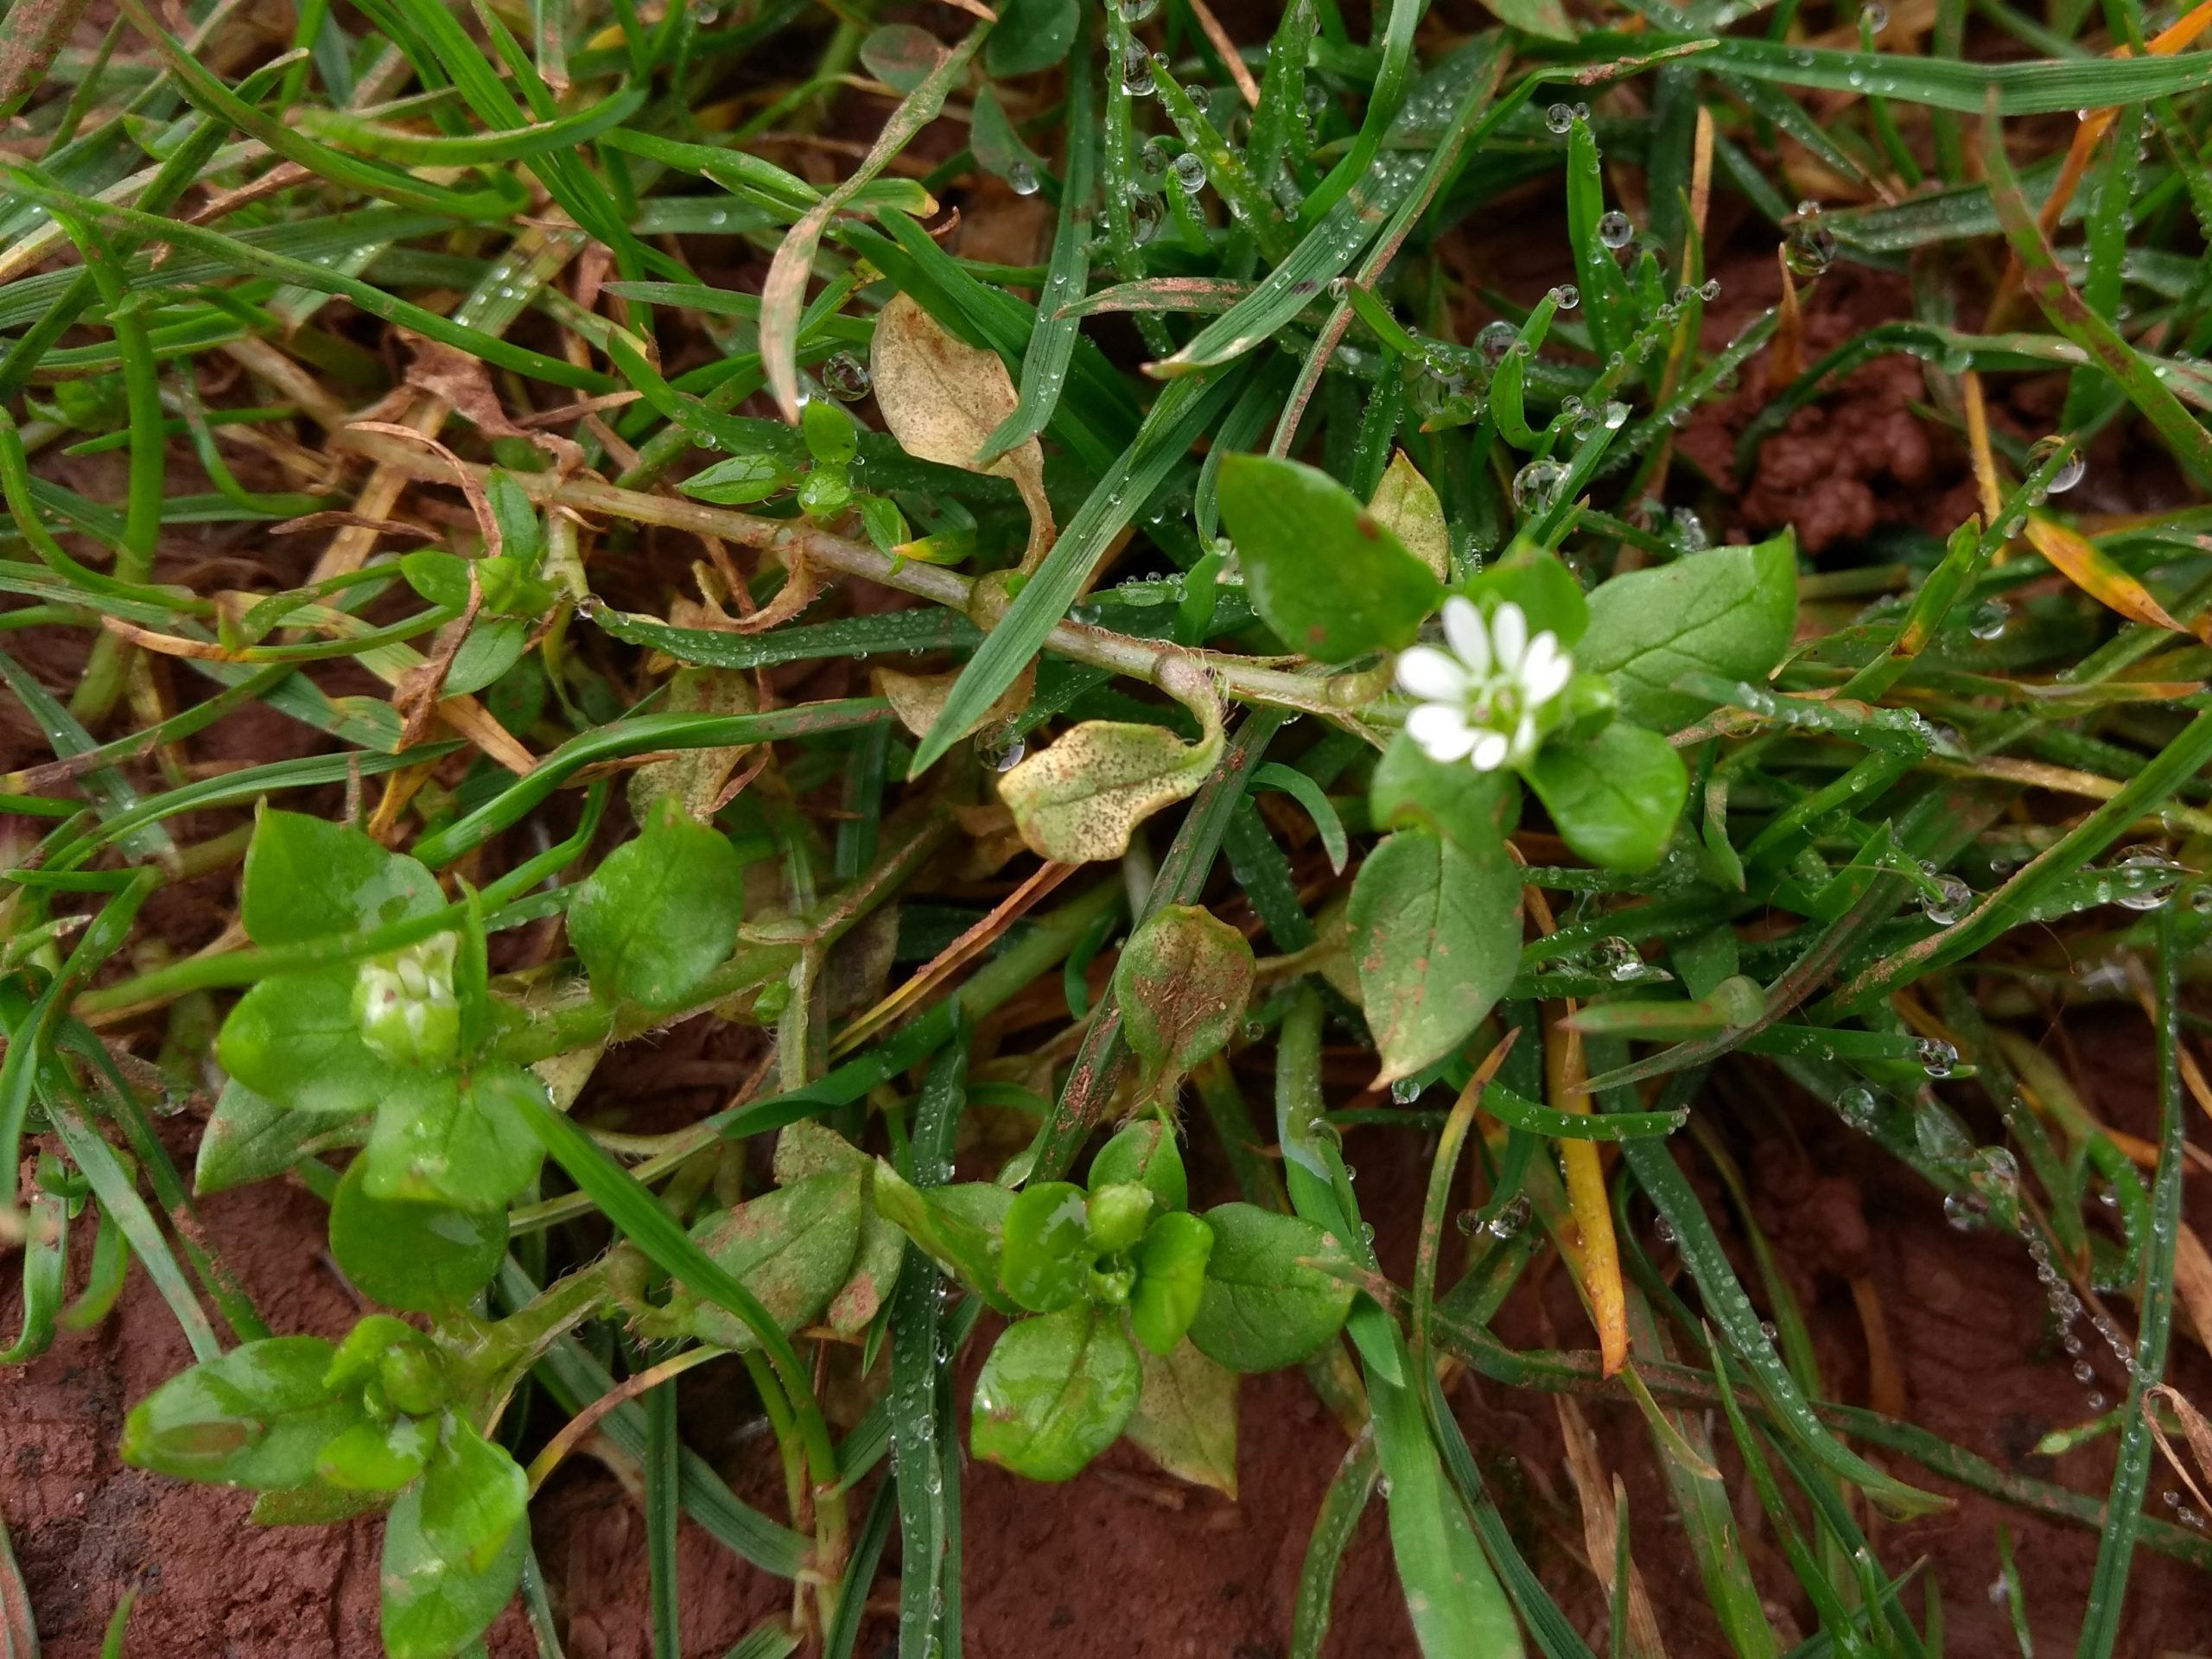 Spotting common chickweed amongst grass plants